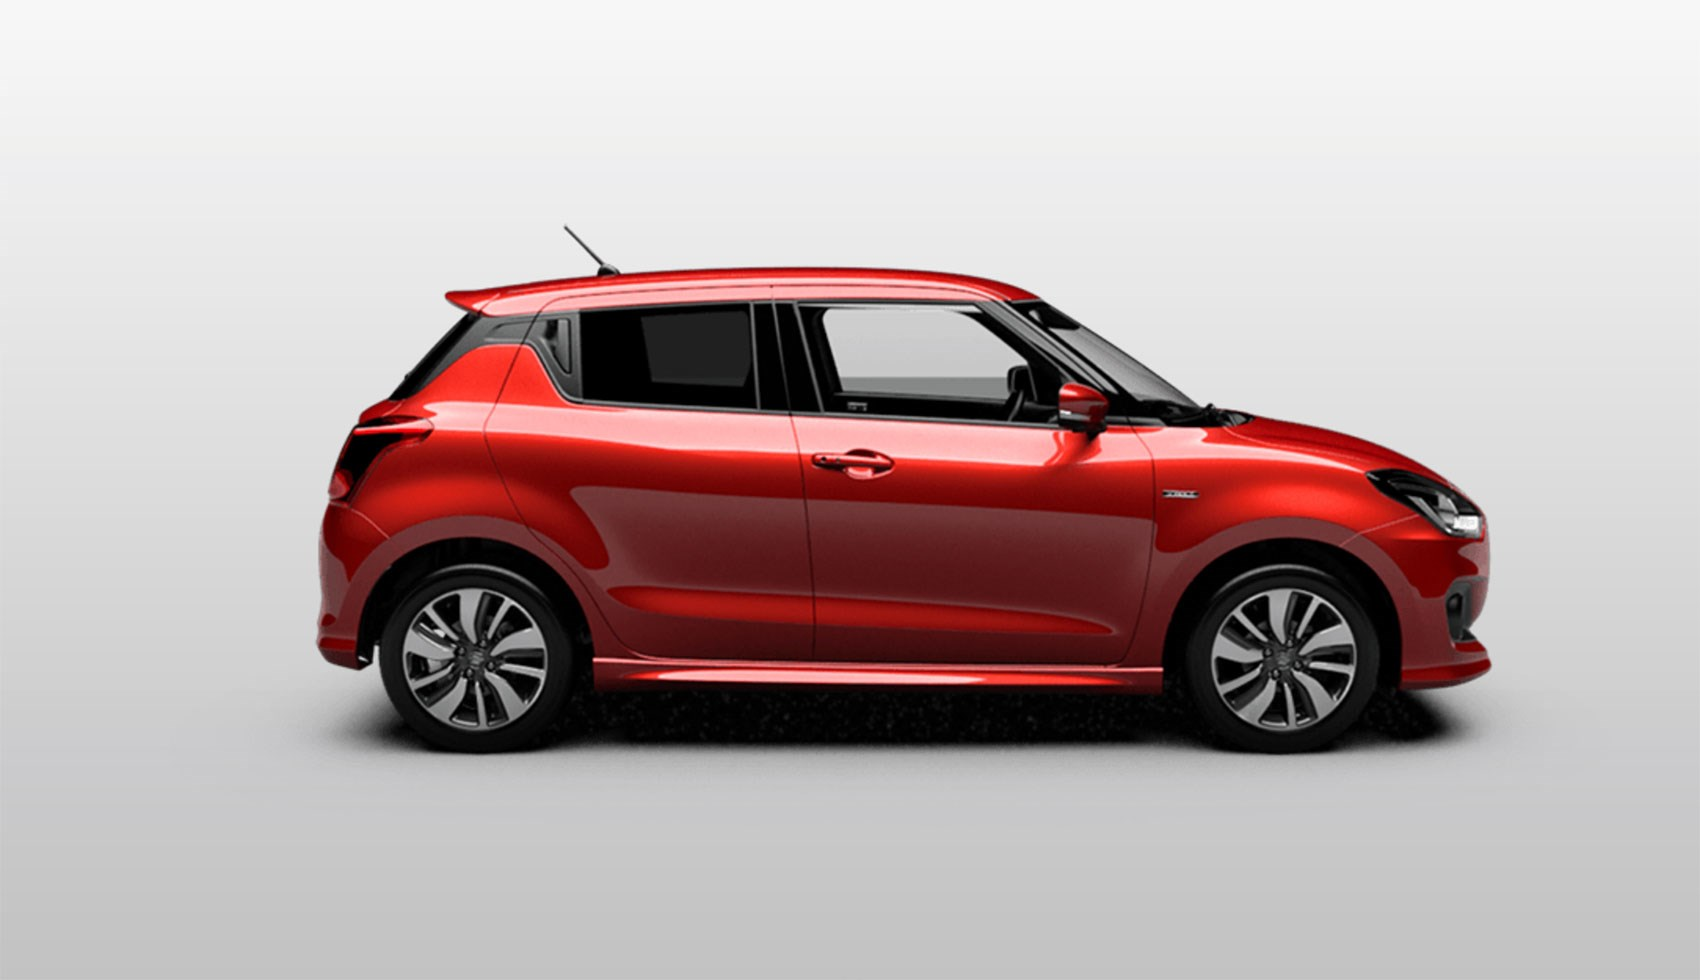 New 2017 Suzuki Swift Unveiled In An Note The Rear Door Handles Hidden C Pillar